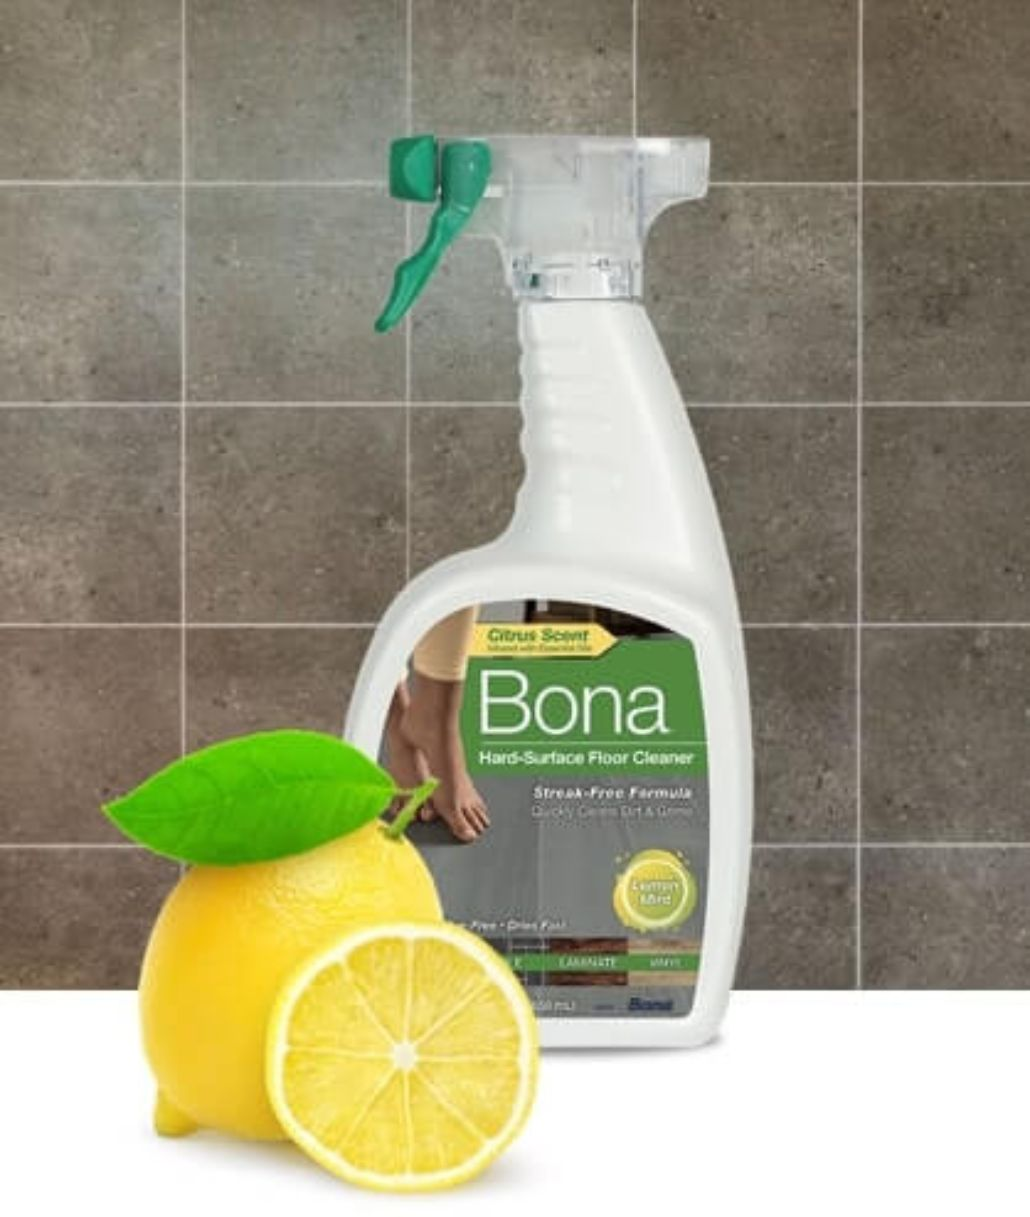 New Scents for Clean Floors